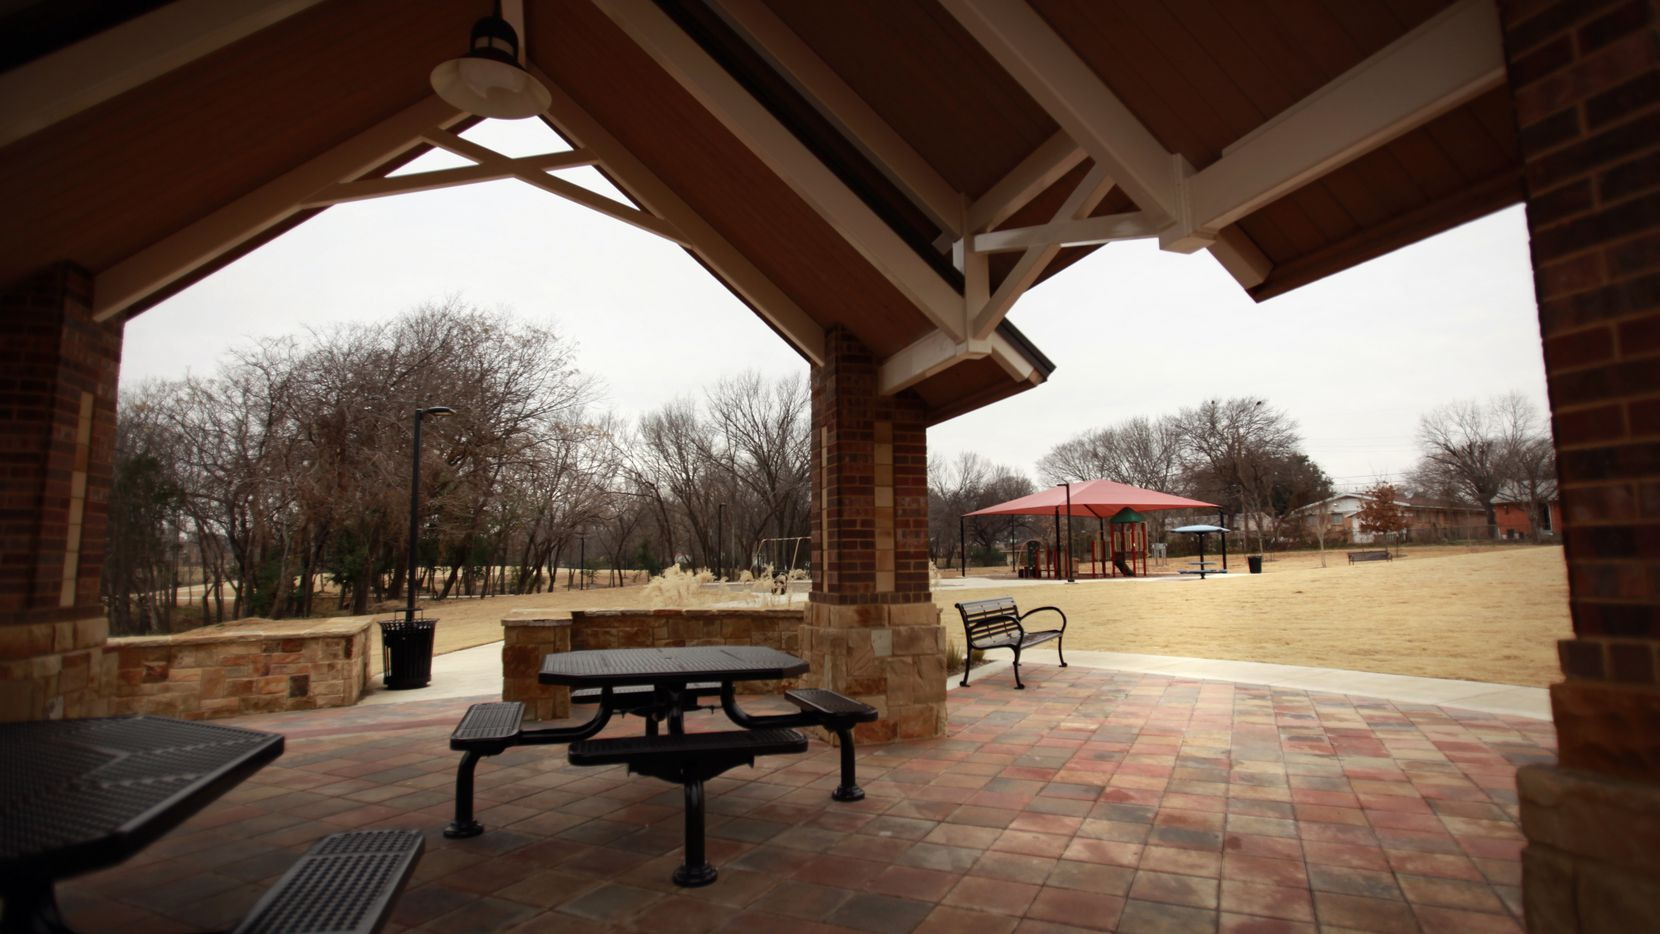 Markwood park on South MacArthur Boulevard in Irving.